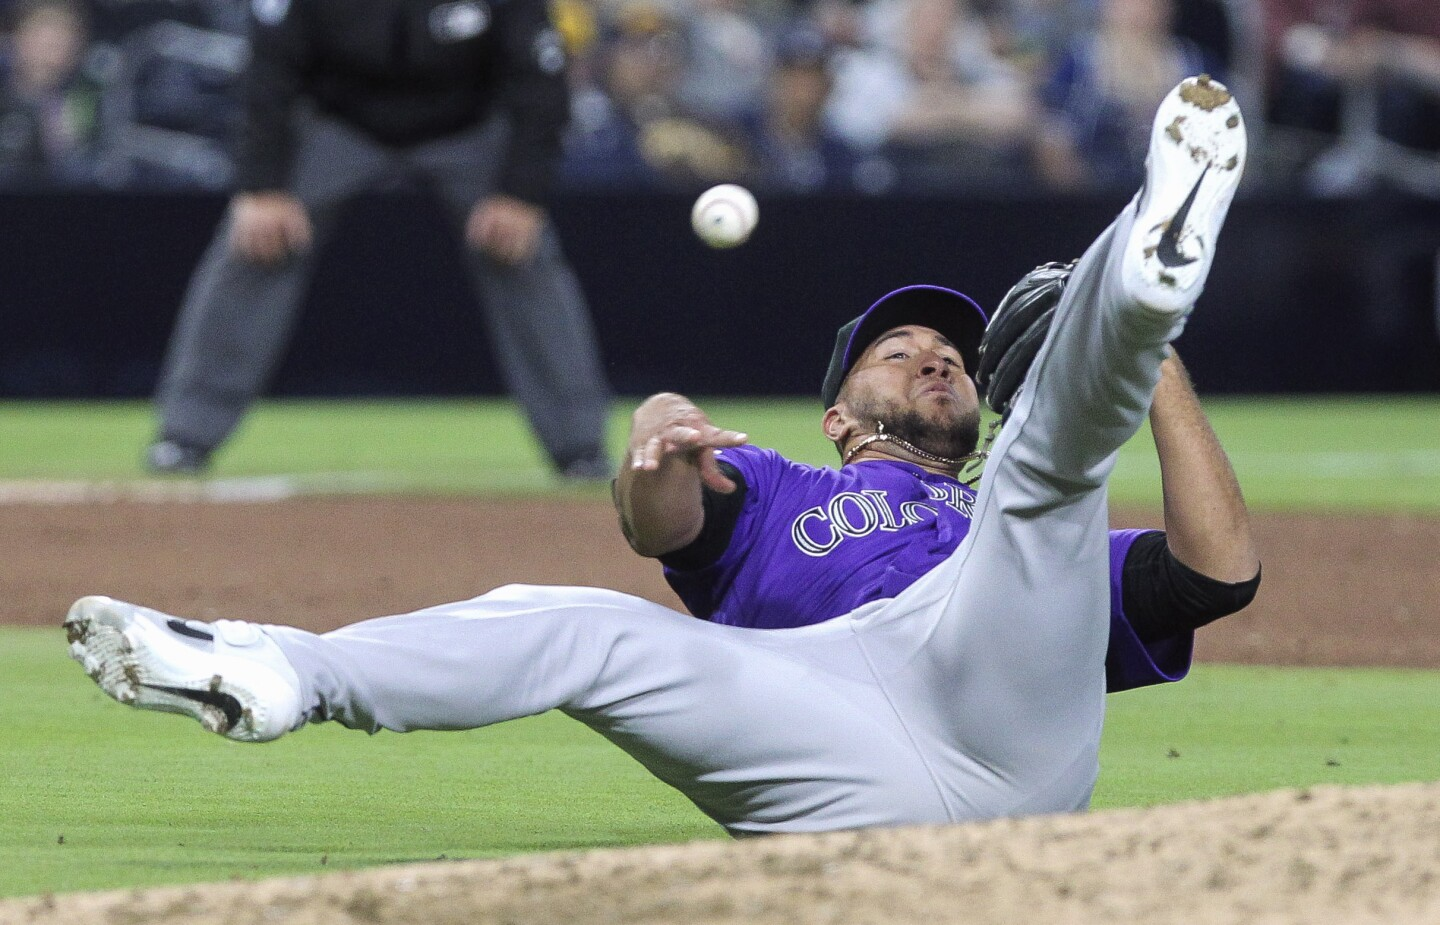 After stopping the Padres' Manuel Margot's infield hit, the Rockies' pitcher Carlos Estévez tries to throw to first base while on his back, but Estévez's throwing error allows Margot to make it to second base during the eighth inning at Petco Park in San Diego on Tuesday, April 16, 2019.